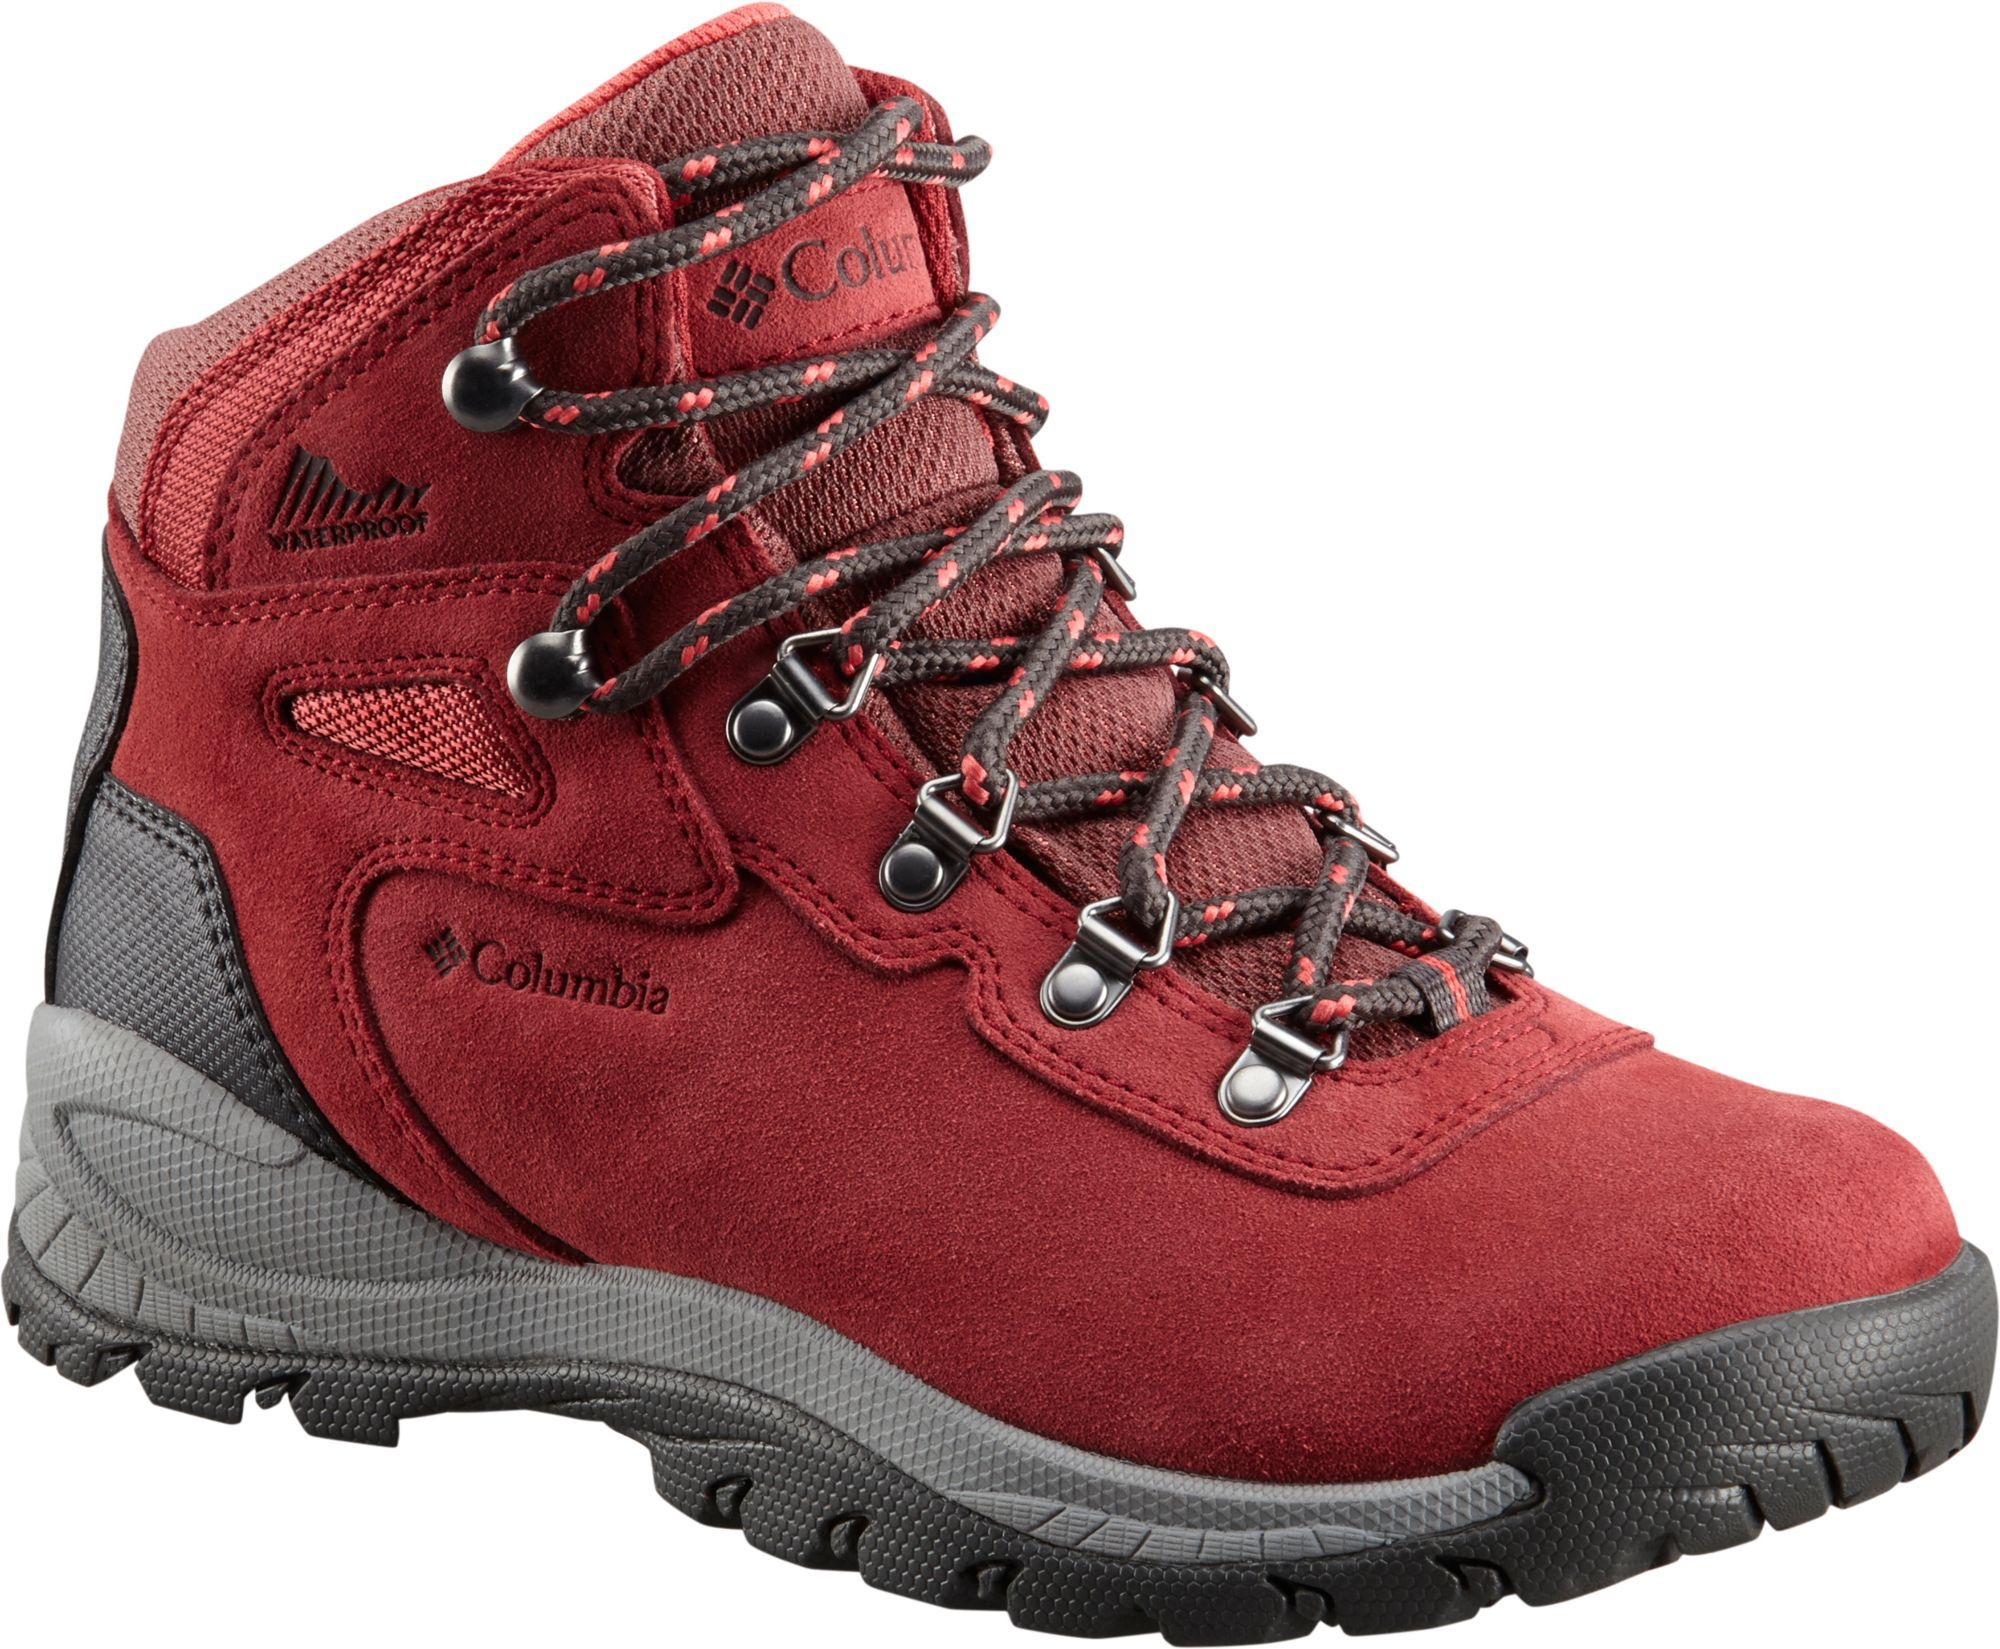 5e939659cff Columbia Women's Newton Ridge Plus Amped Waterproof Hiking Boots ...